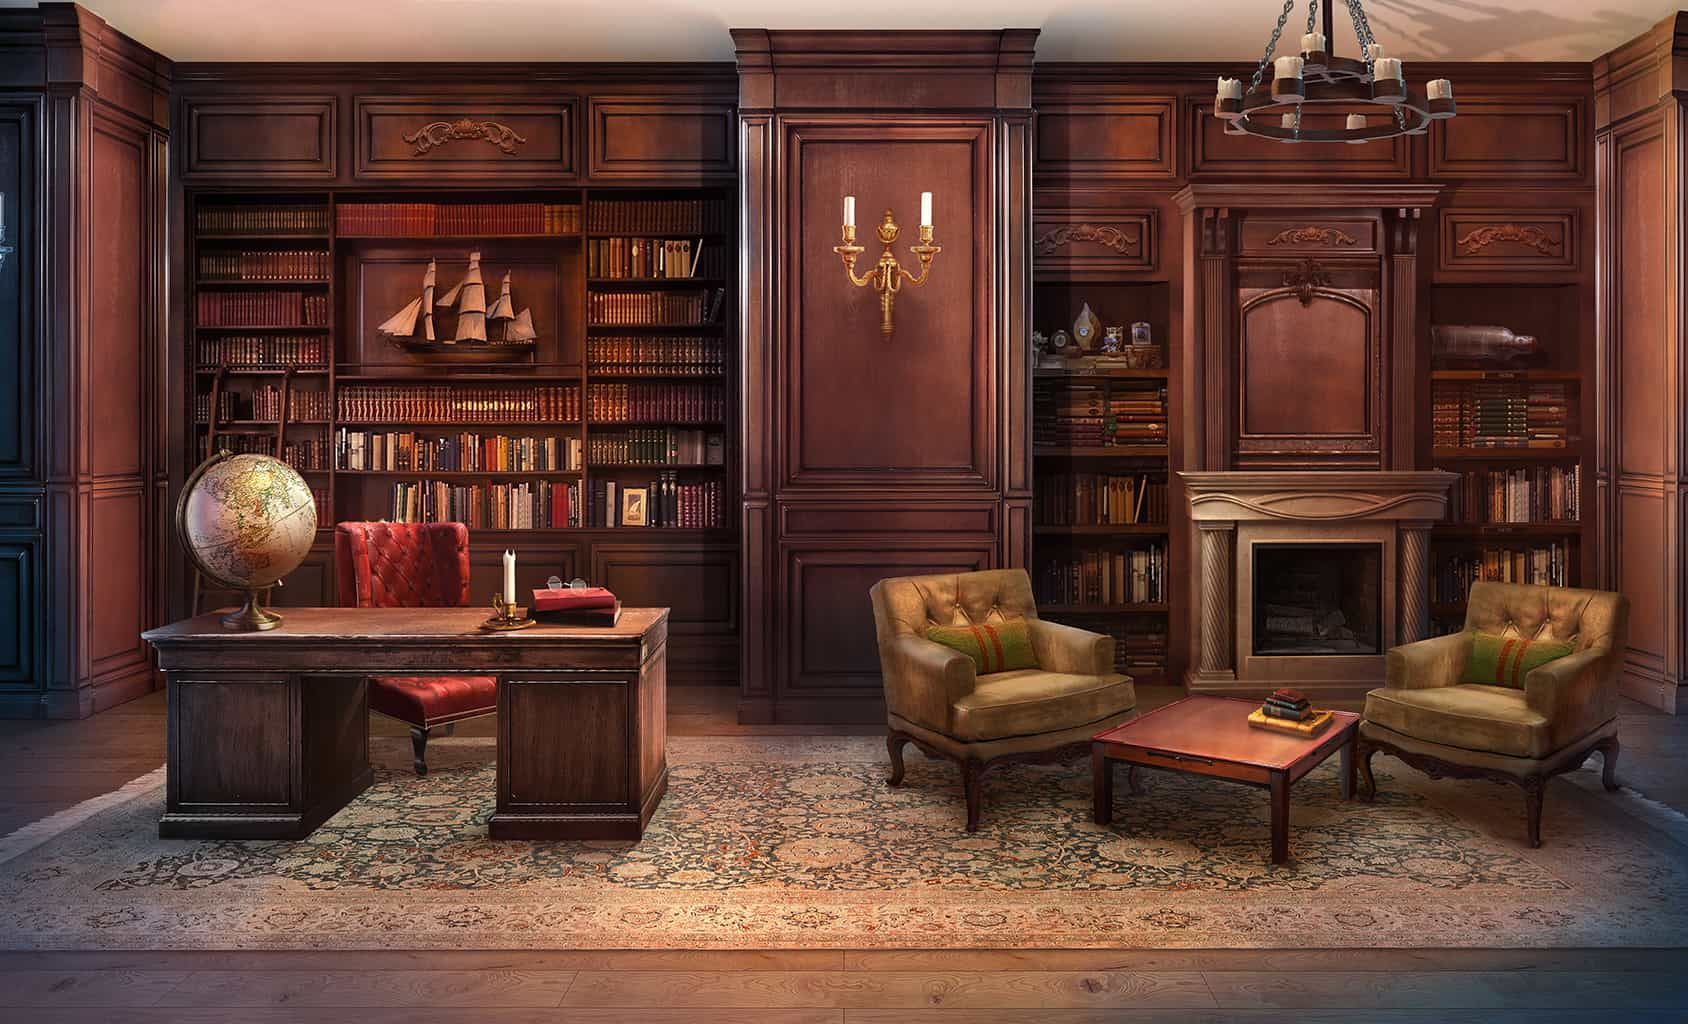 Pin by G on Choices™️ game backgrounds House rooms